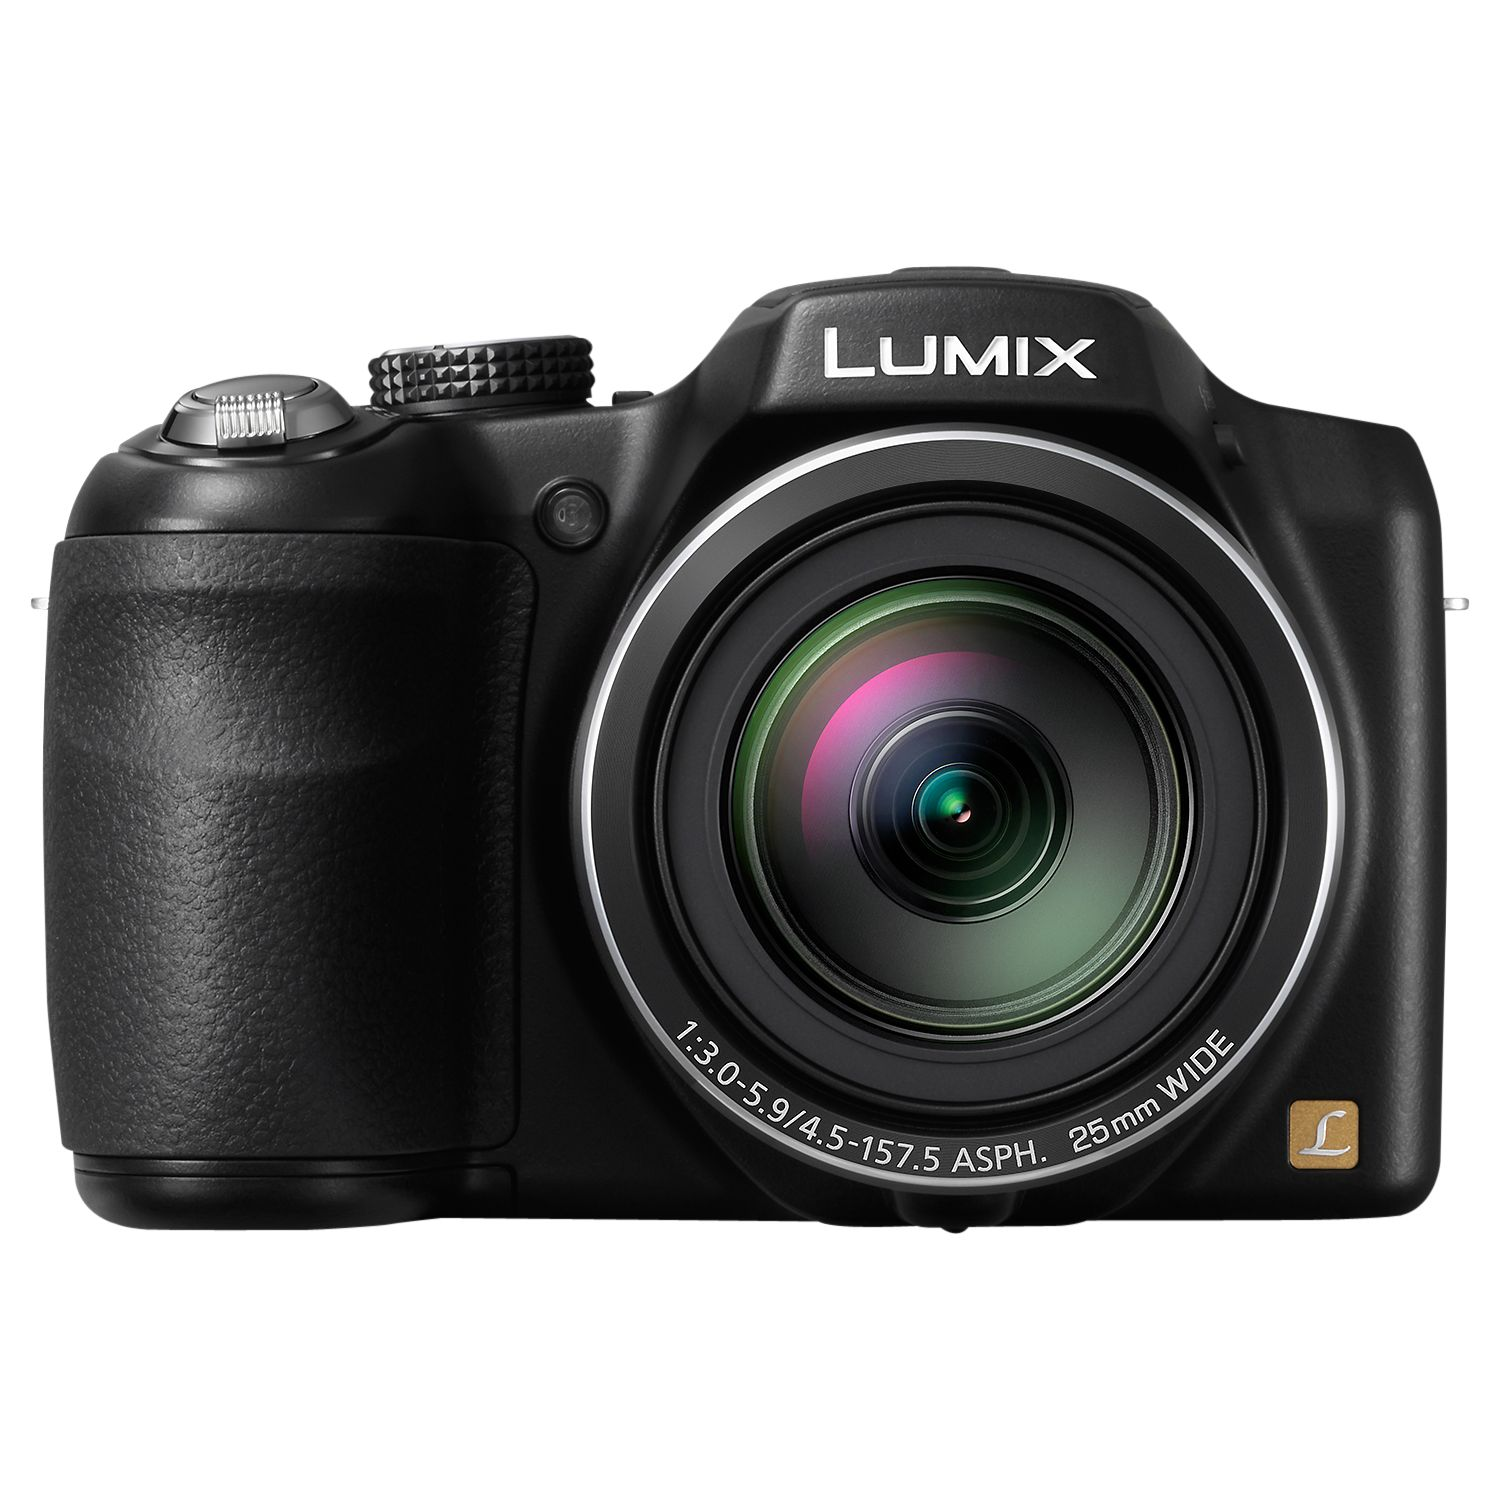 Panasonic Lumix DMC-LZ30E-K Bridge Camera